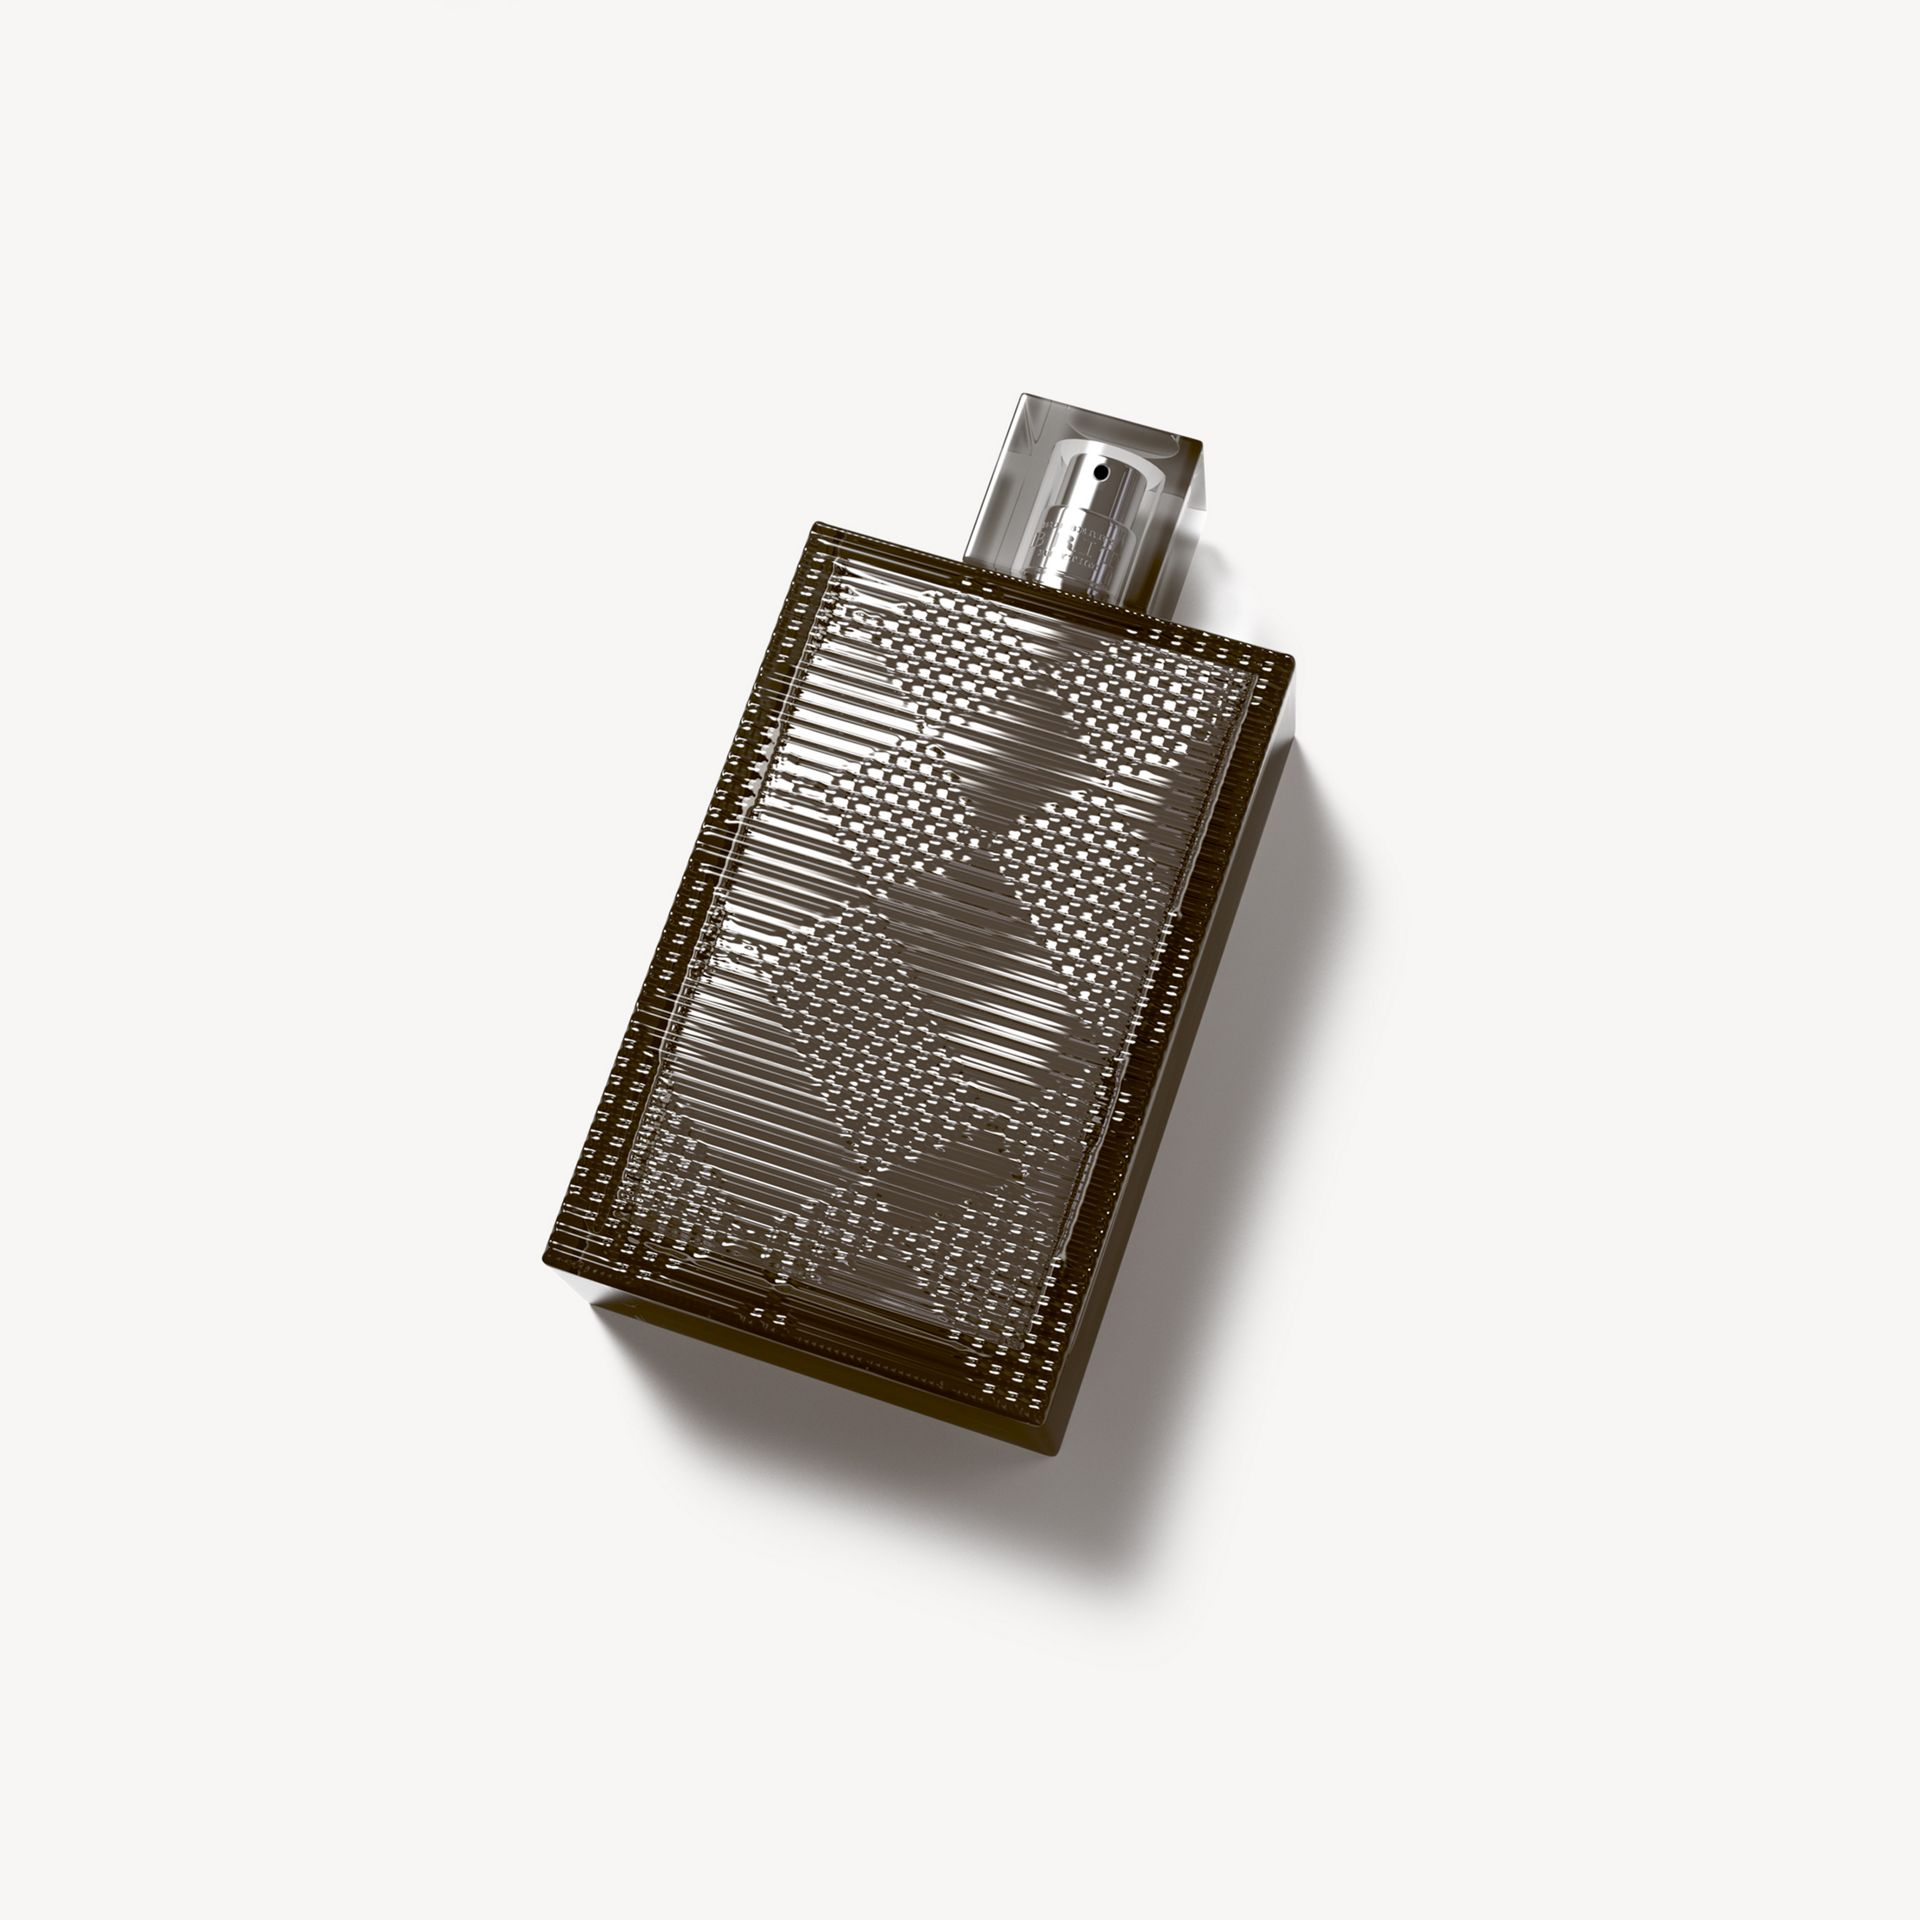 Burberry Brit Rhythm Intense Eau de Toilette 90ml - gallery image 1